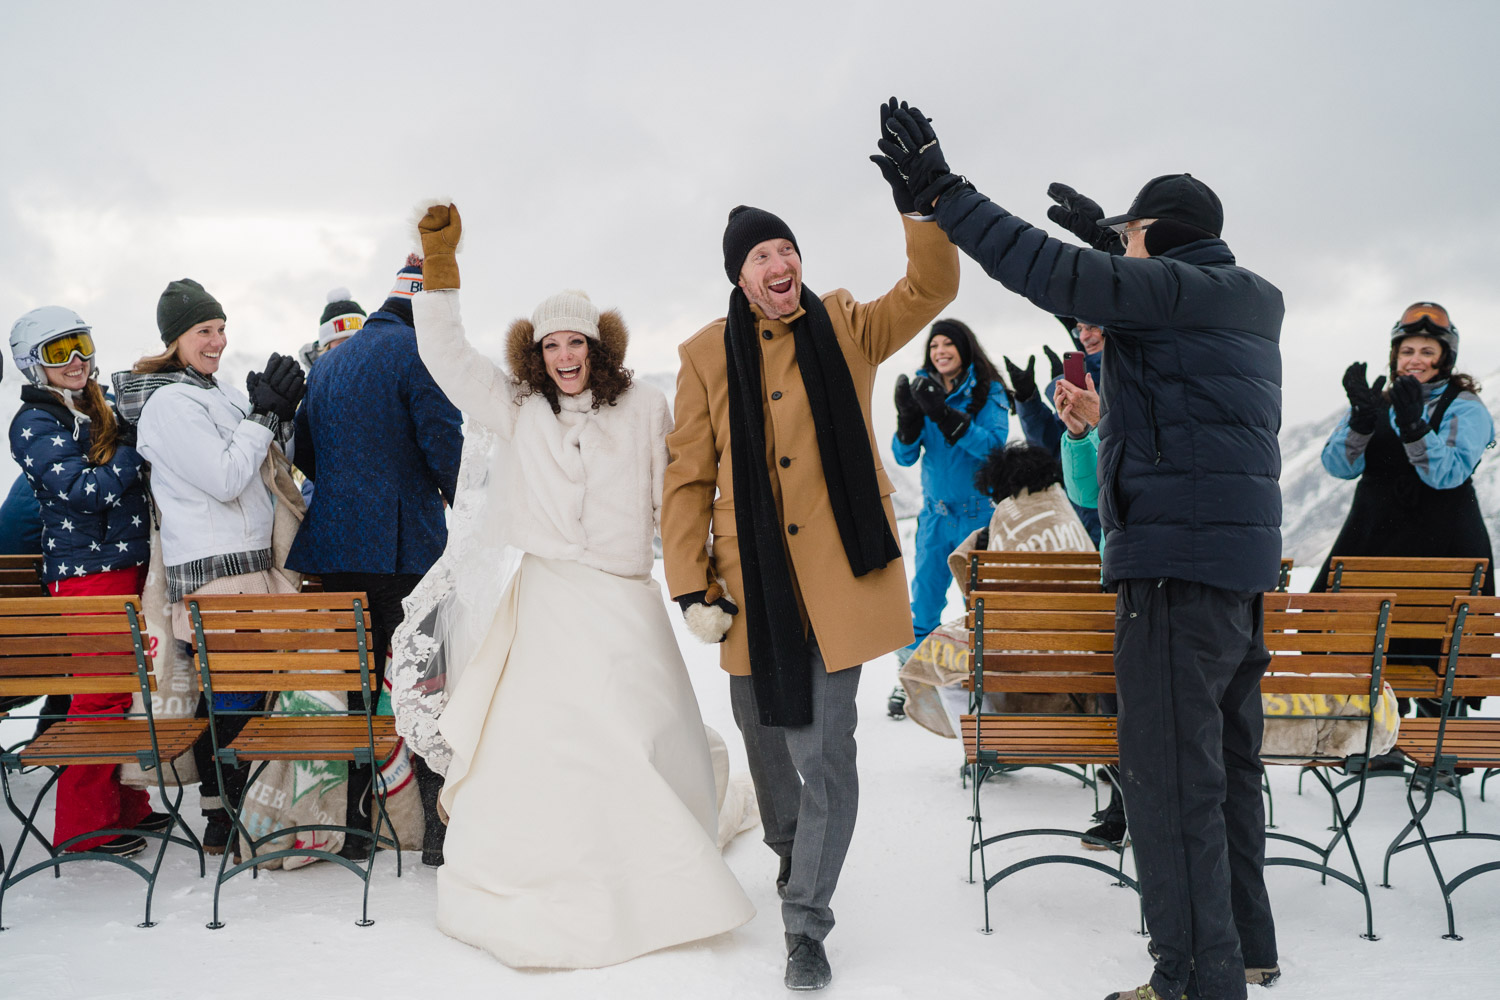 bride and groom celebrating at wedding ceremony on snowy mountain snowbird resort